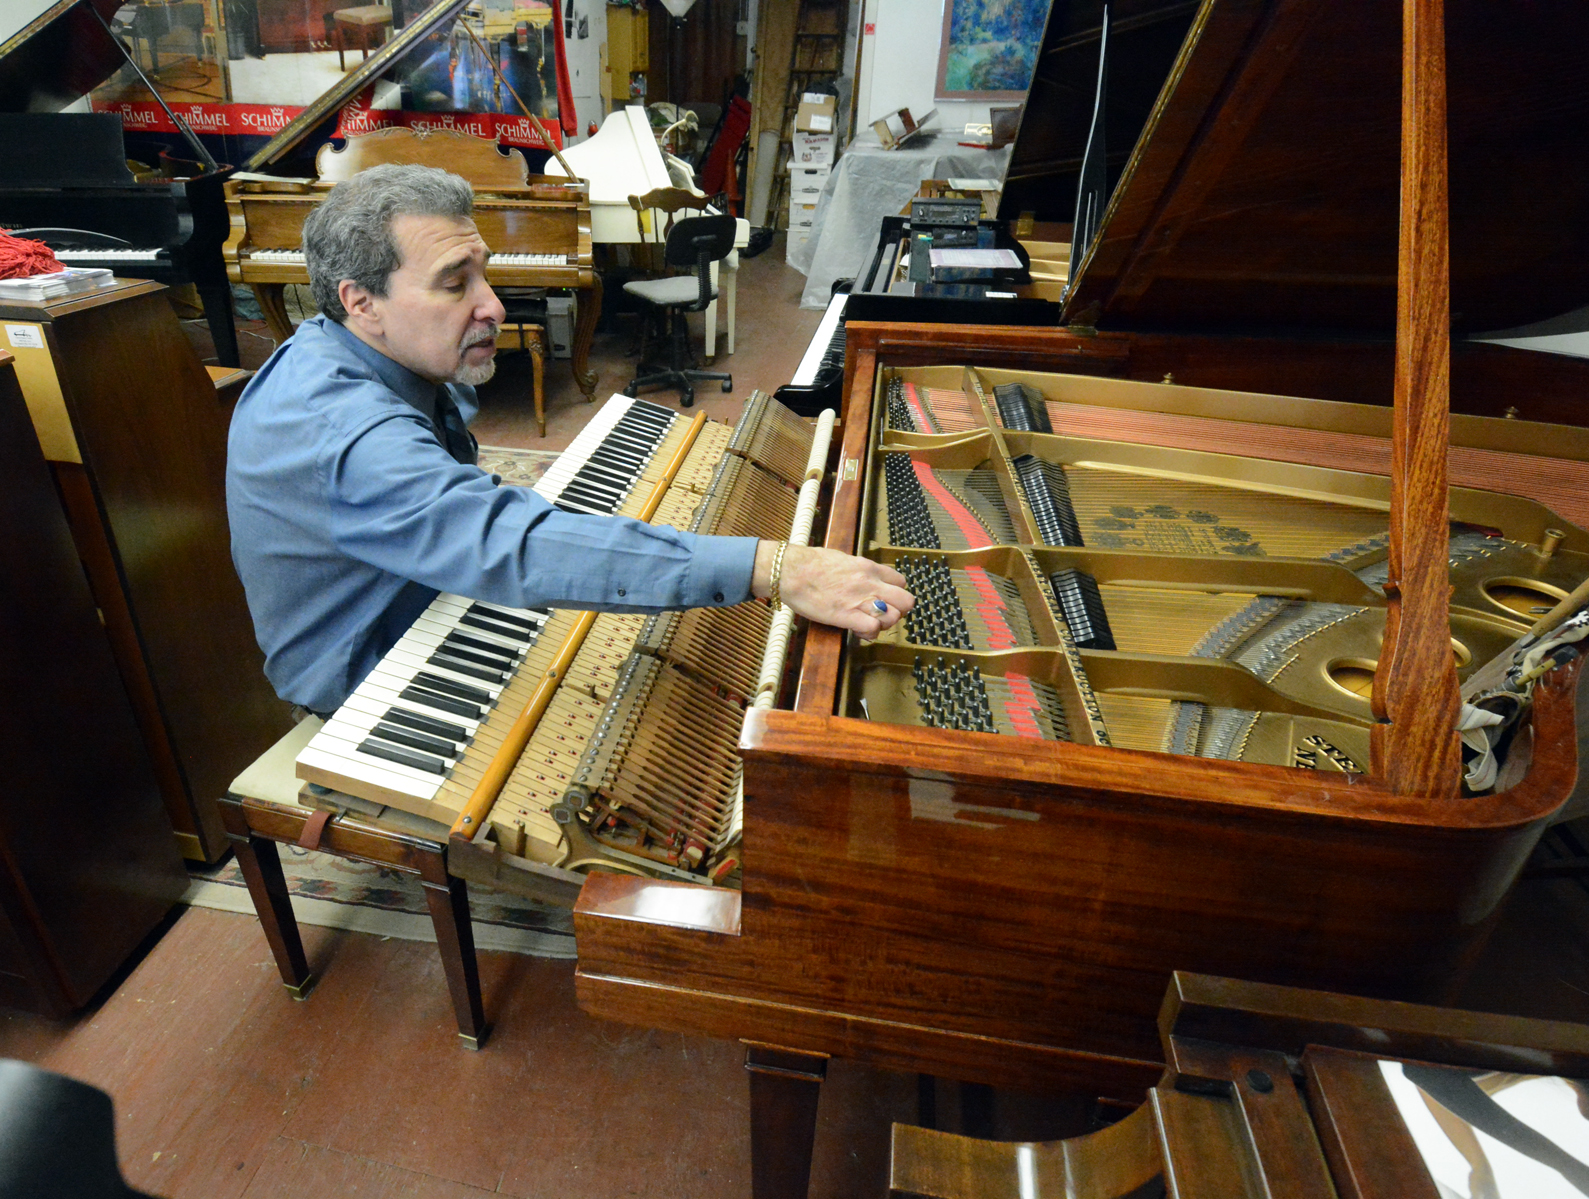 Evan Tublitz working on  Rare Art Case Steinway Grand